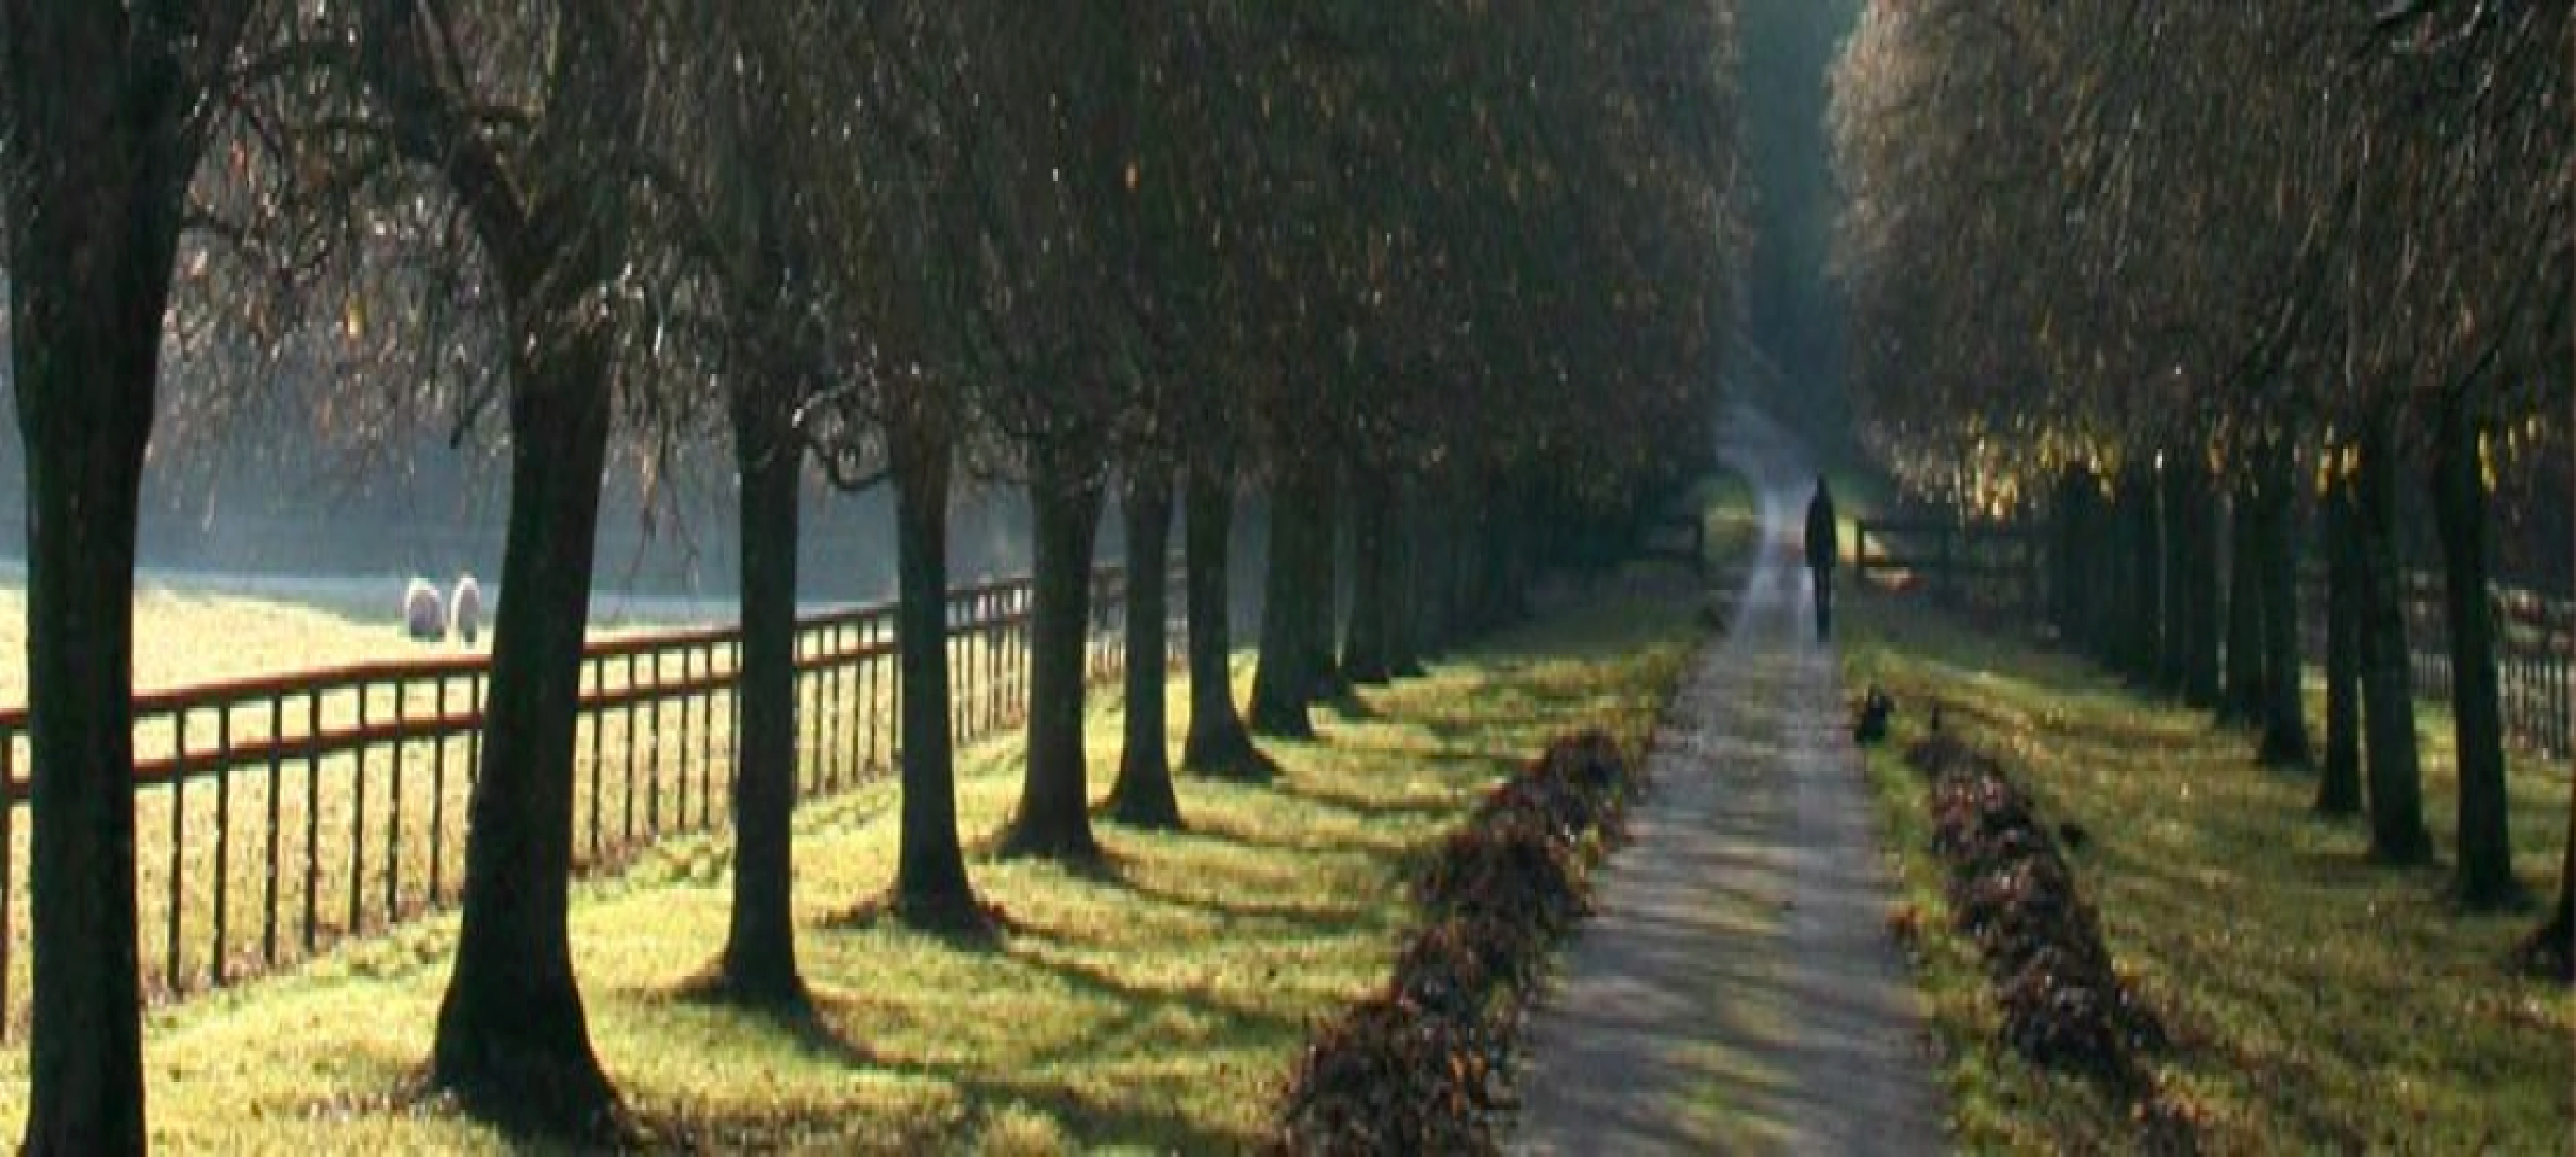 tree-lined-country-driveway-fence